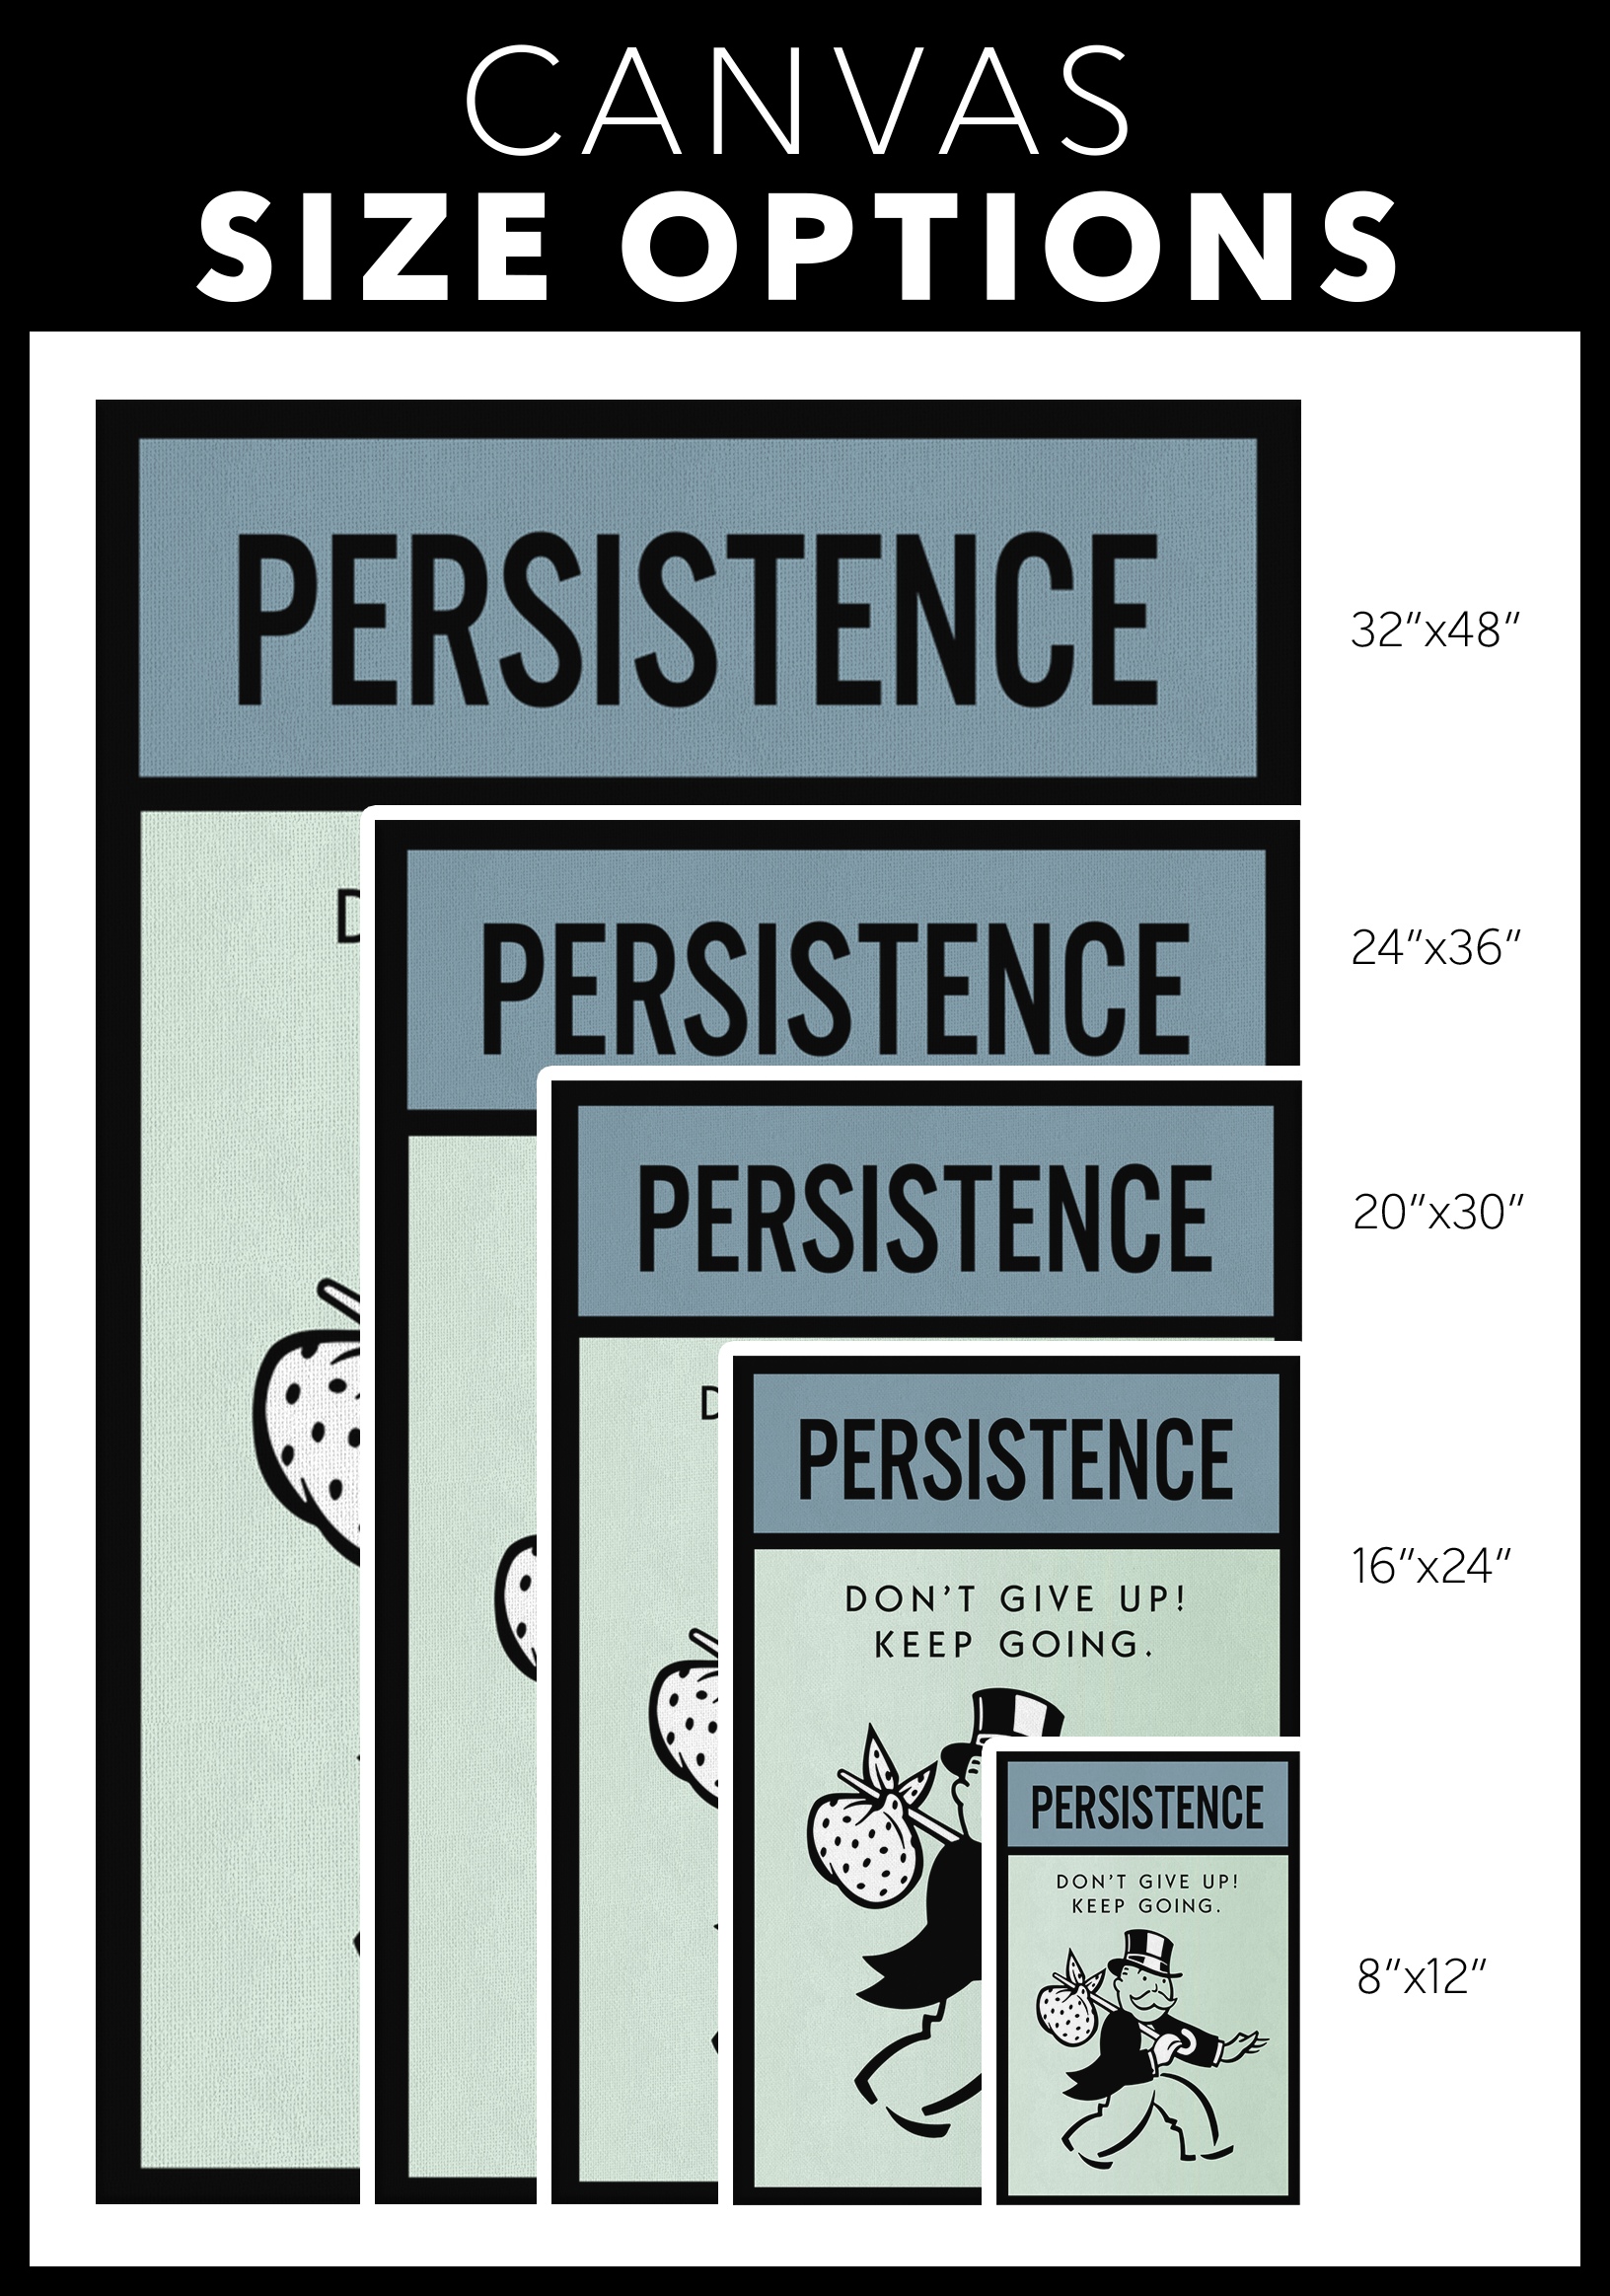 Persistence Monopoly Office Home Wall Art Painting Canvas - Canvas Wall Art 2 - Blastiful